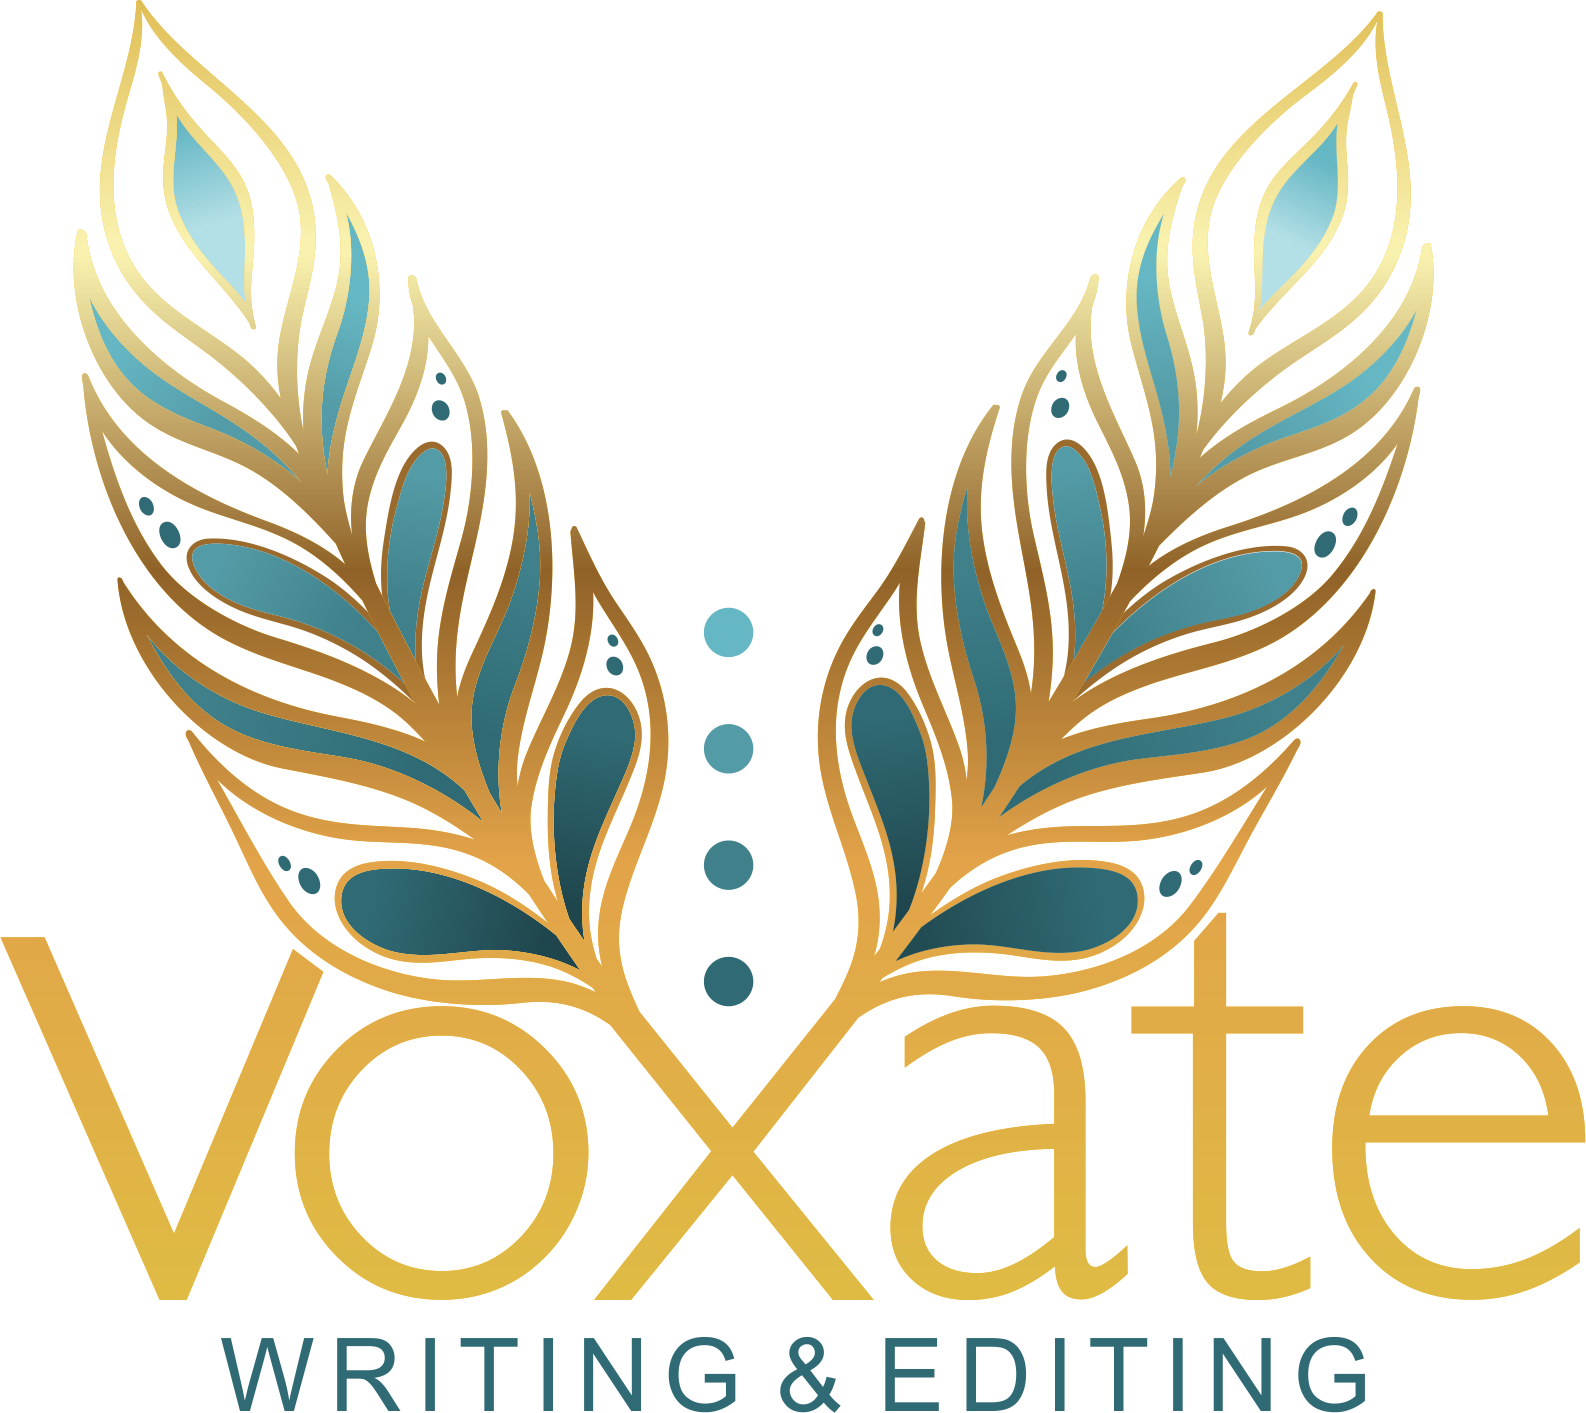 Voxate Writing & Editing